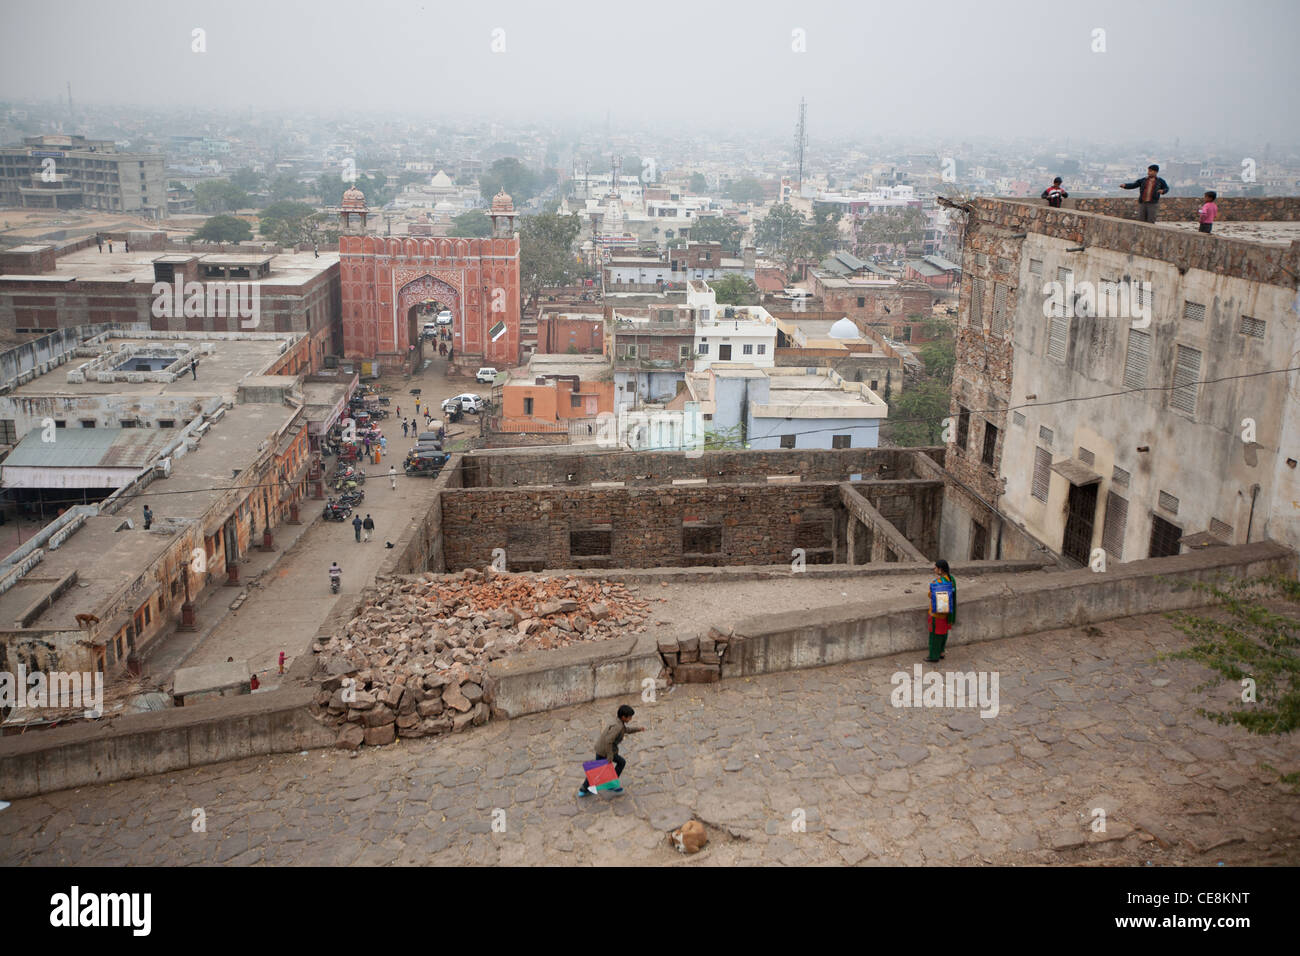 Suraj Pol in Galta, in Jaipur, in Rajasthan, India. - Stock Image